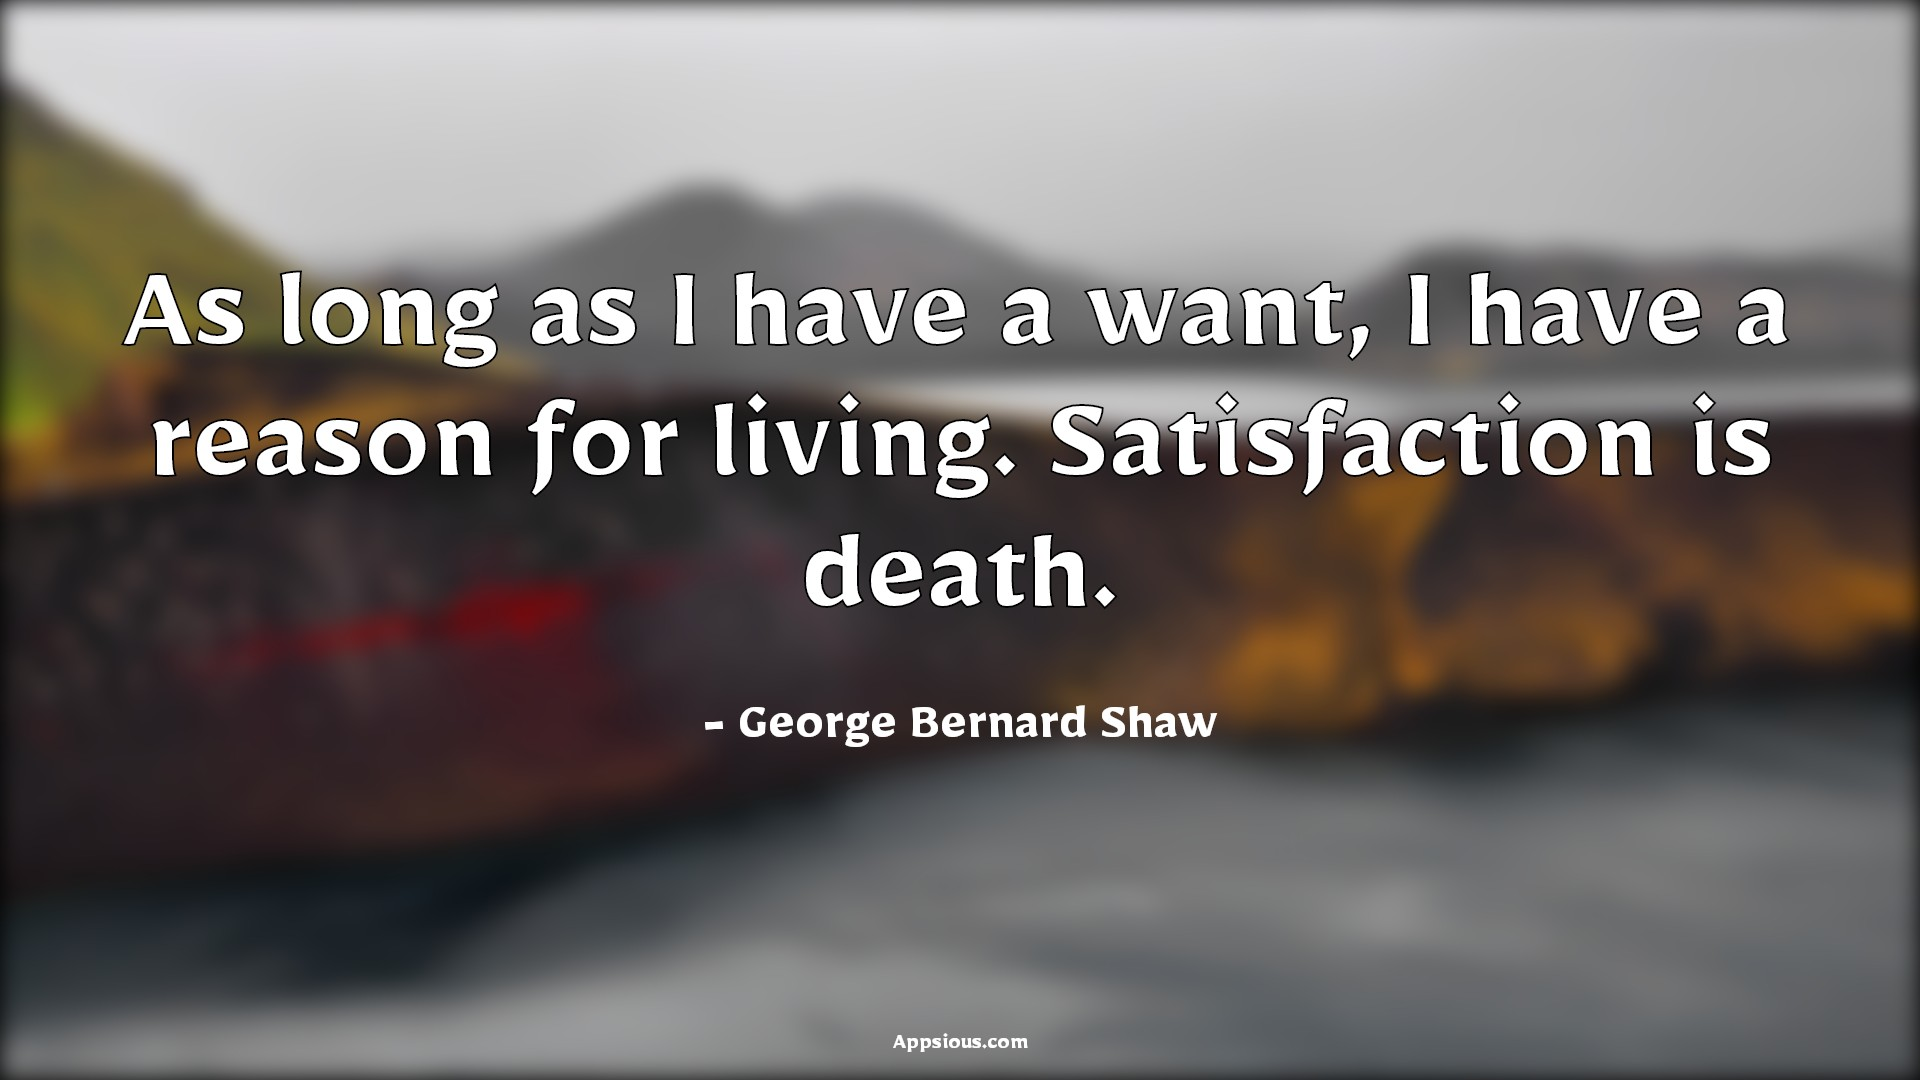 As long as I have a want, I have a reason for living. Satisfaction is death.